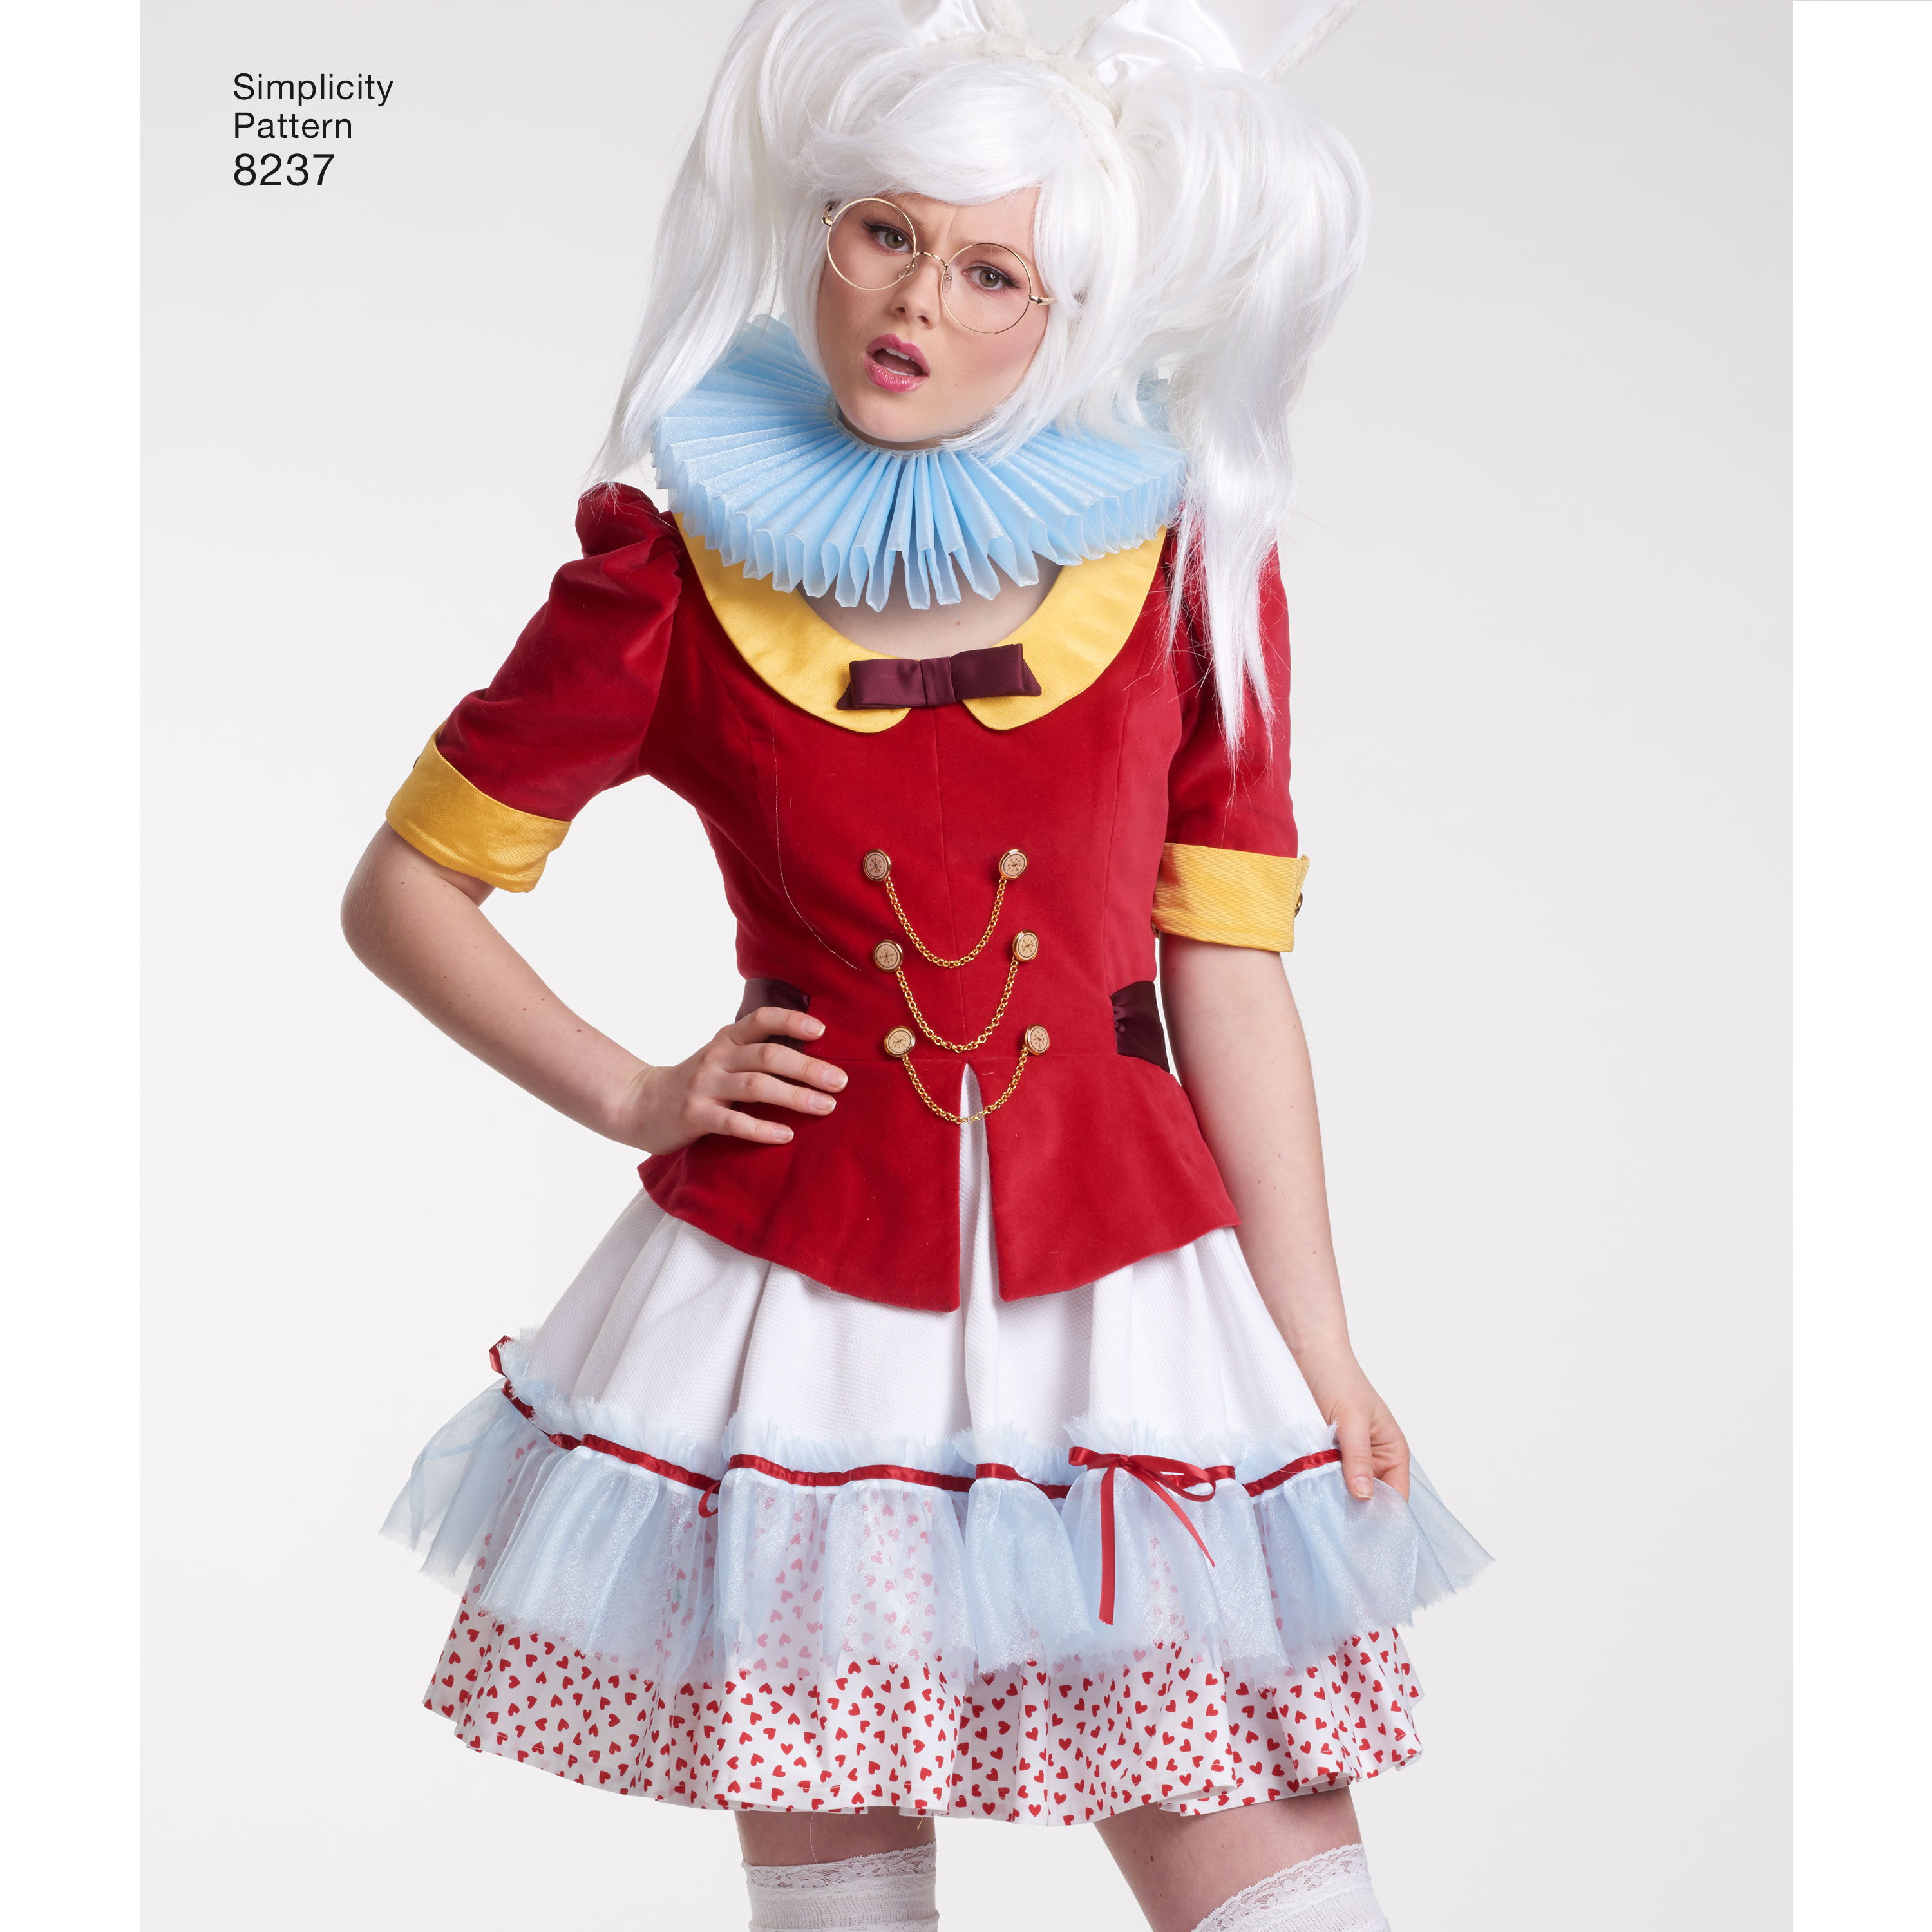 Simplicity Patterns Costumes Best Design Inspiration